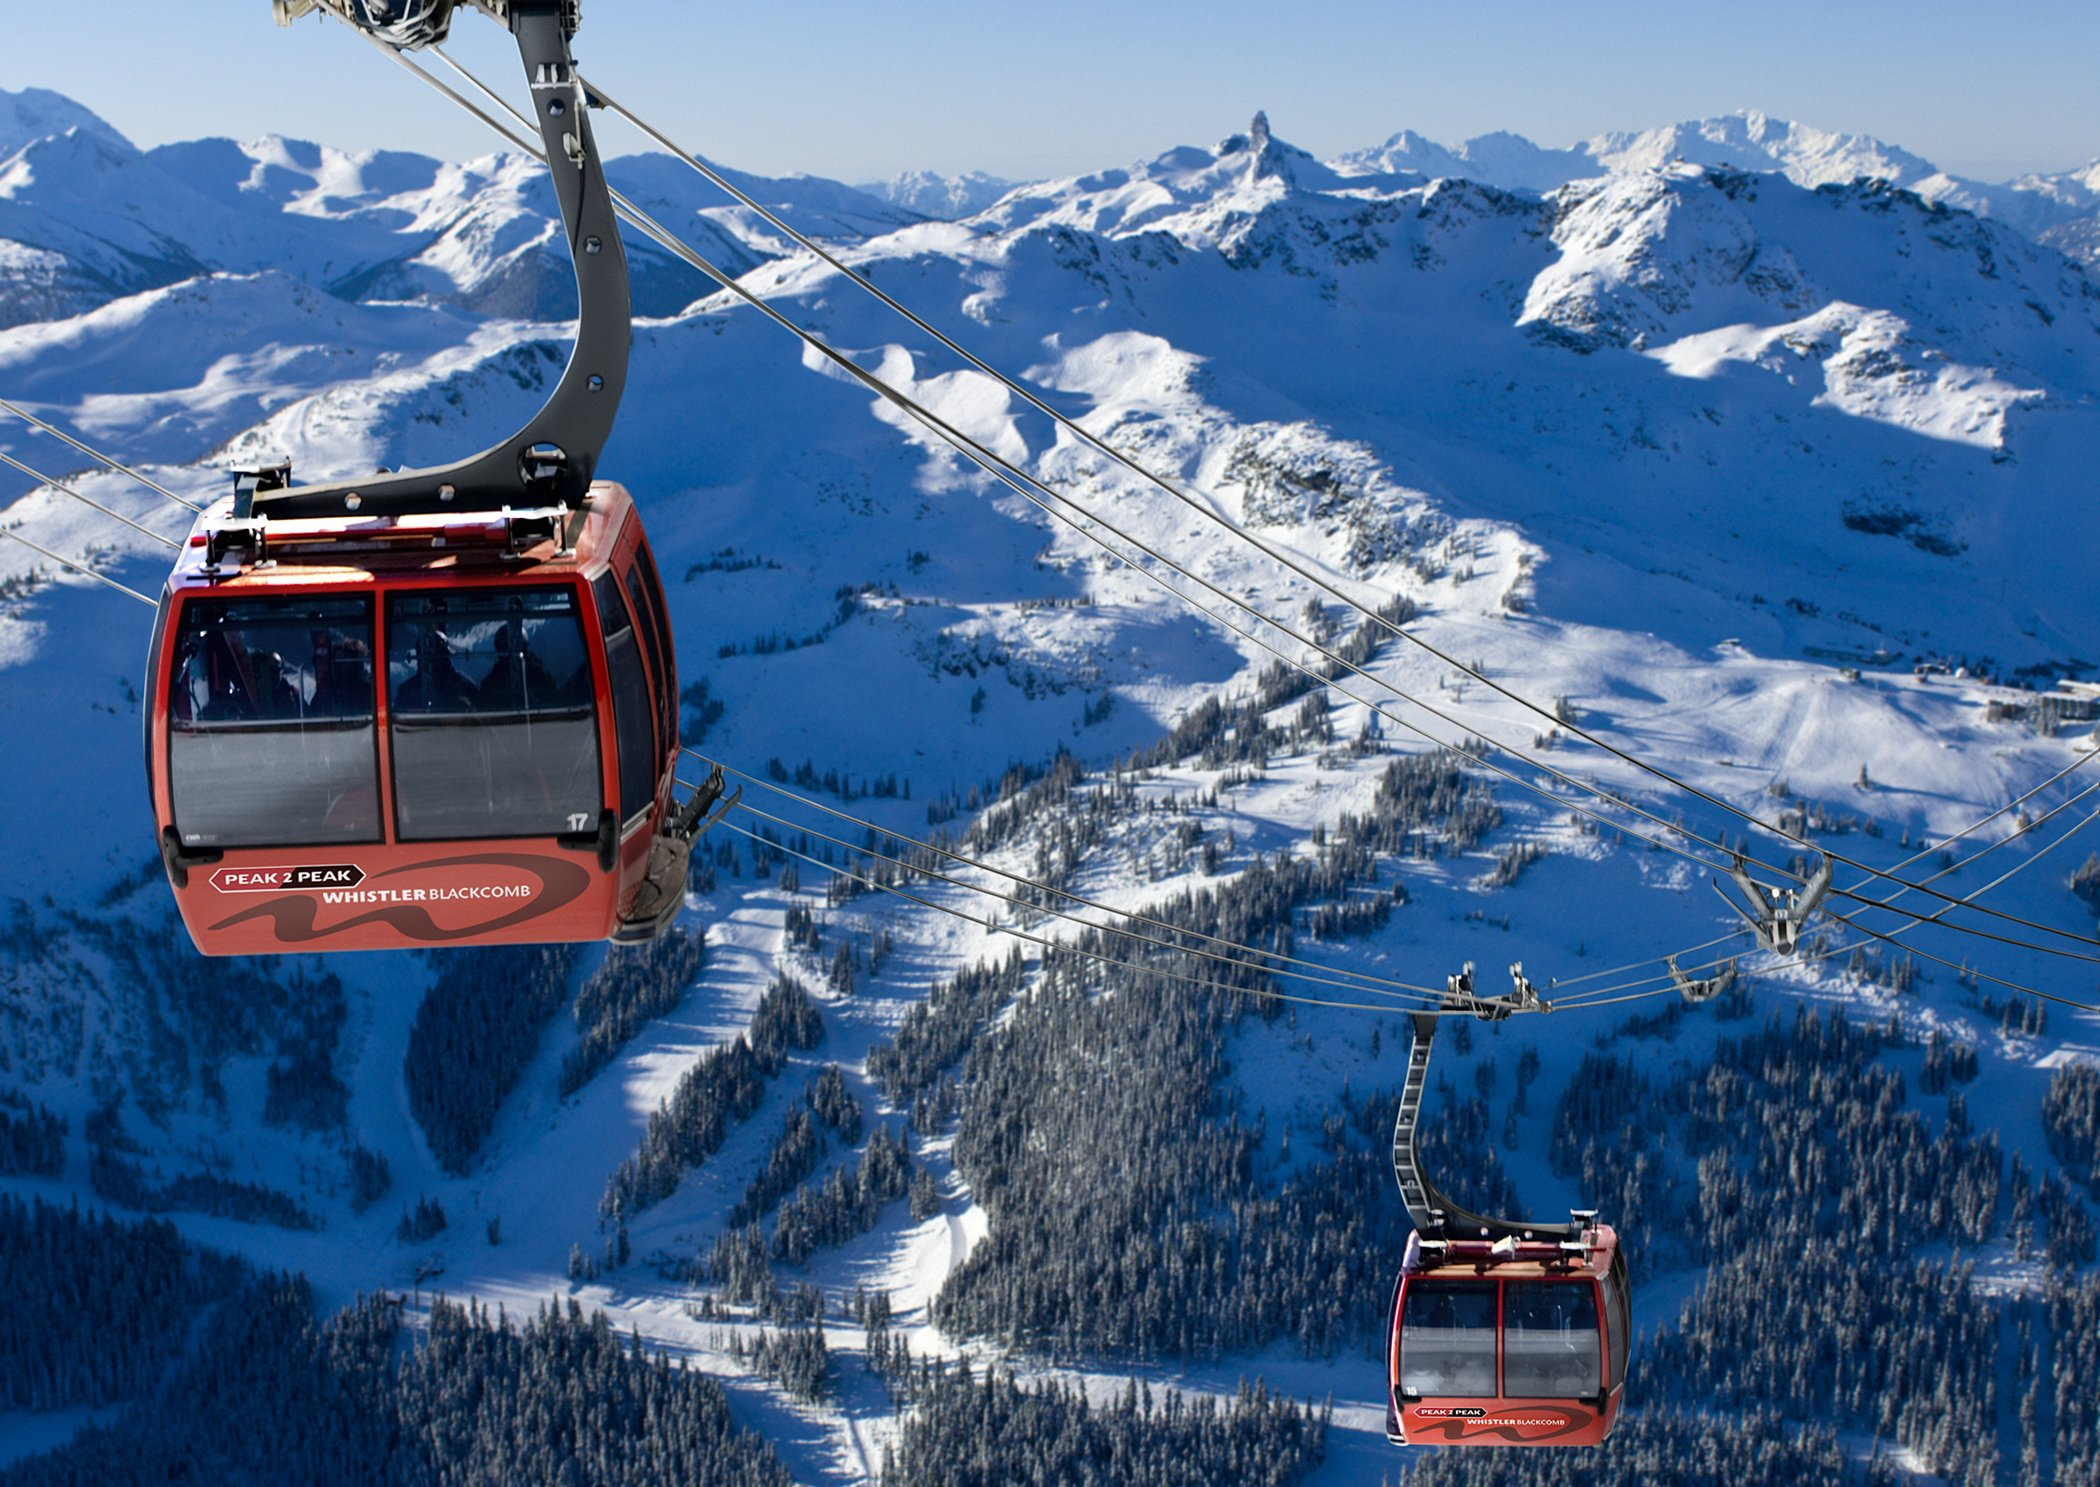 EpicPass - Ski Lift integrado